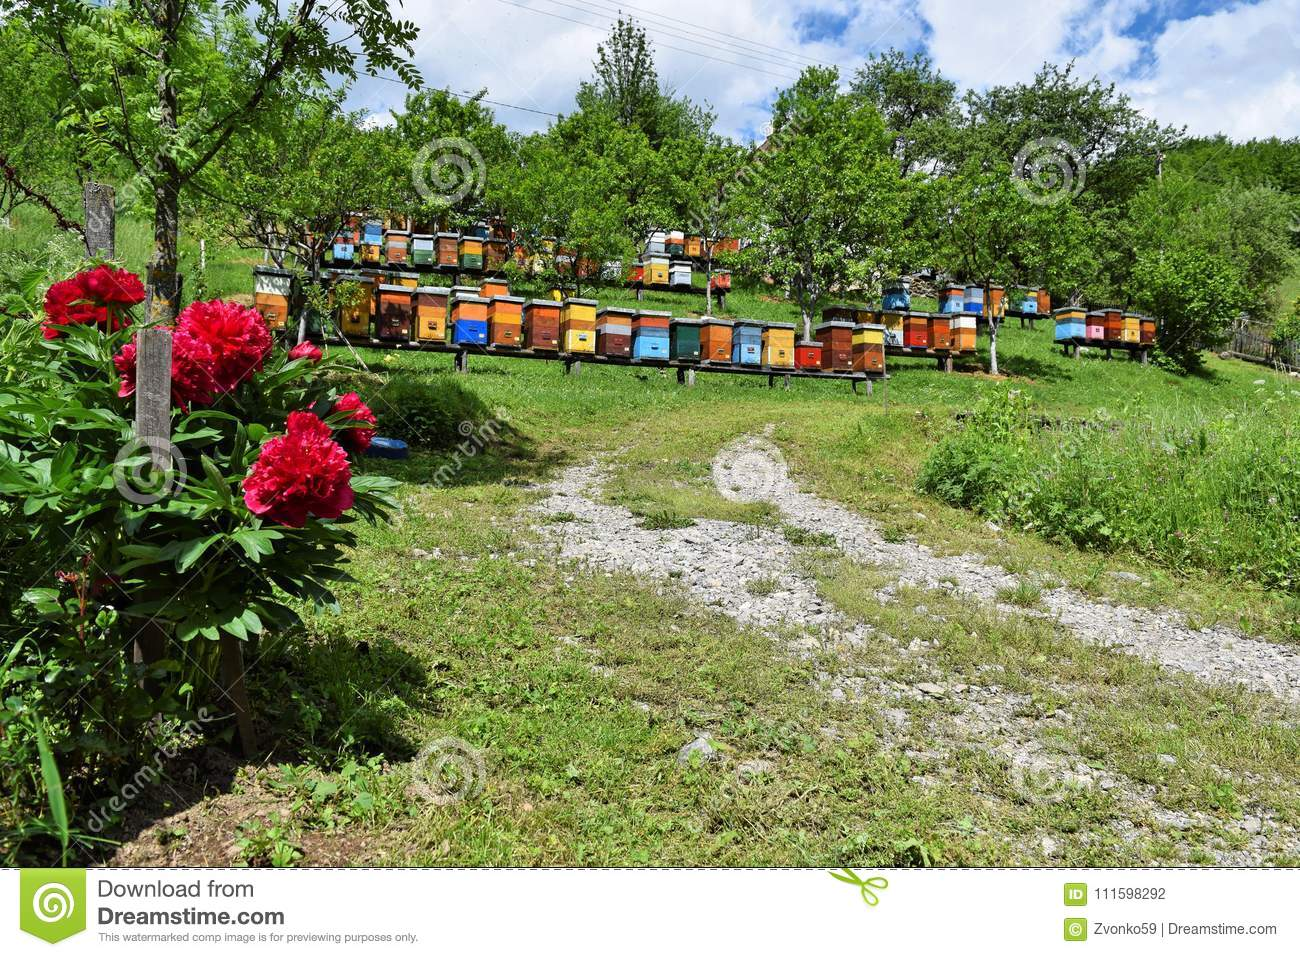 Beekeeping in rural yard during spring